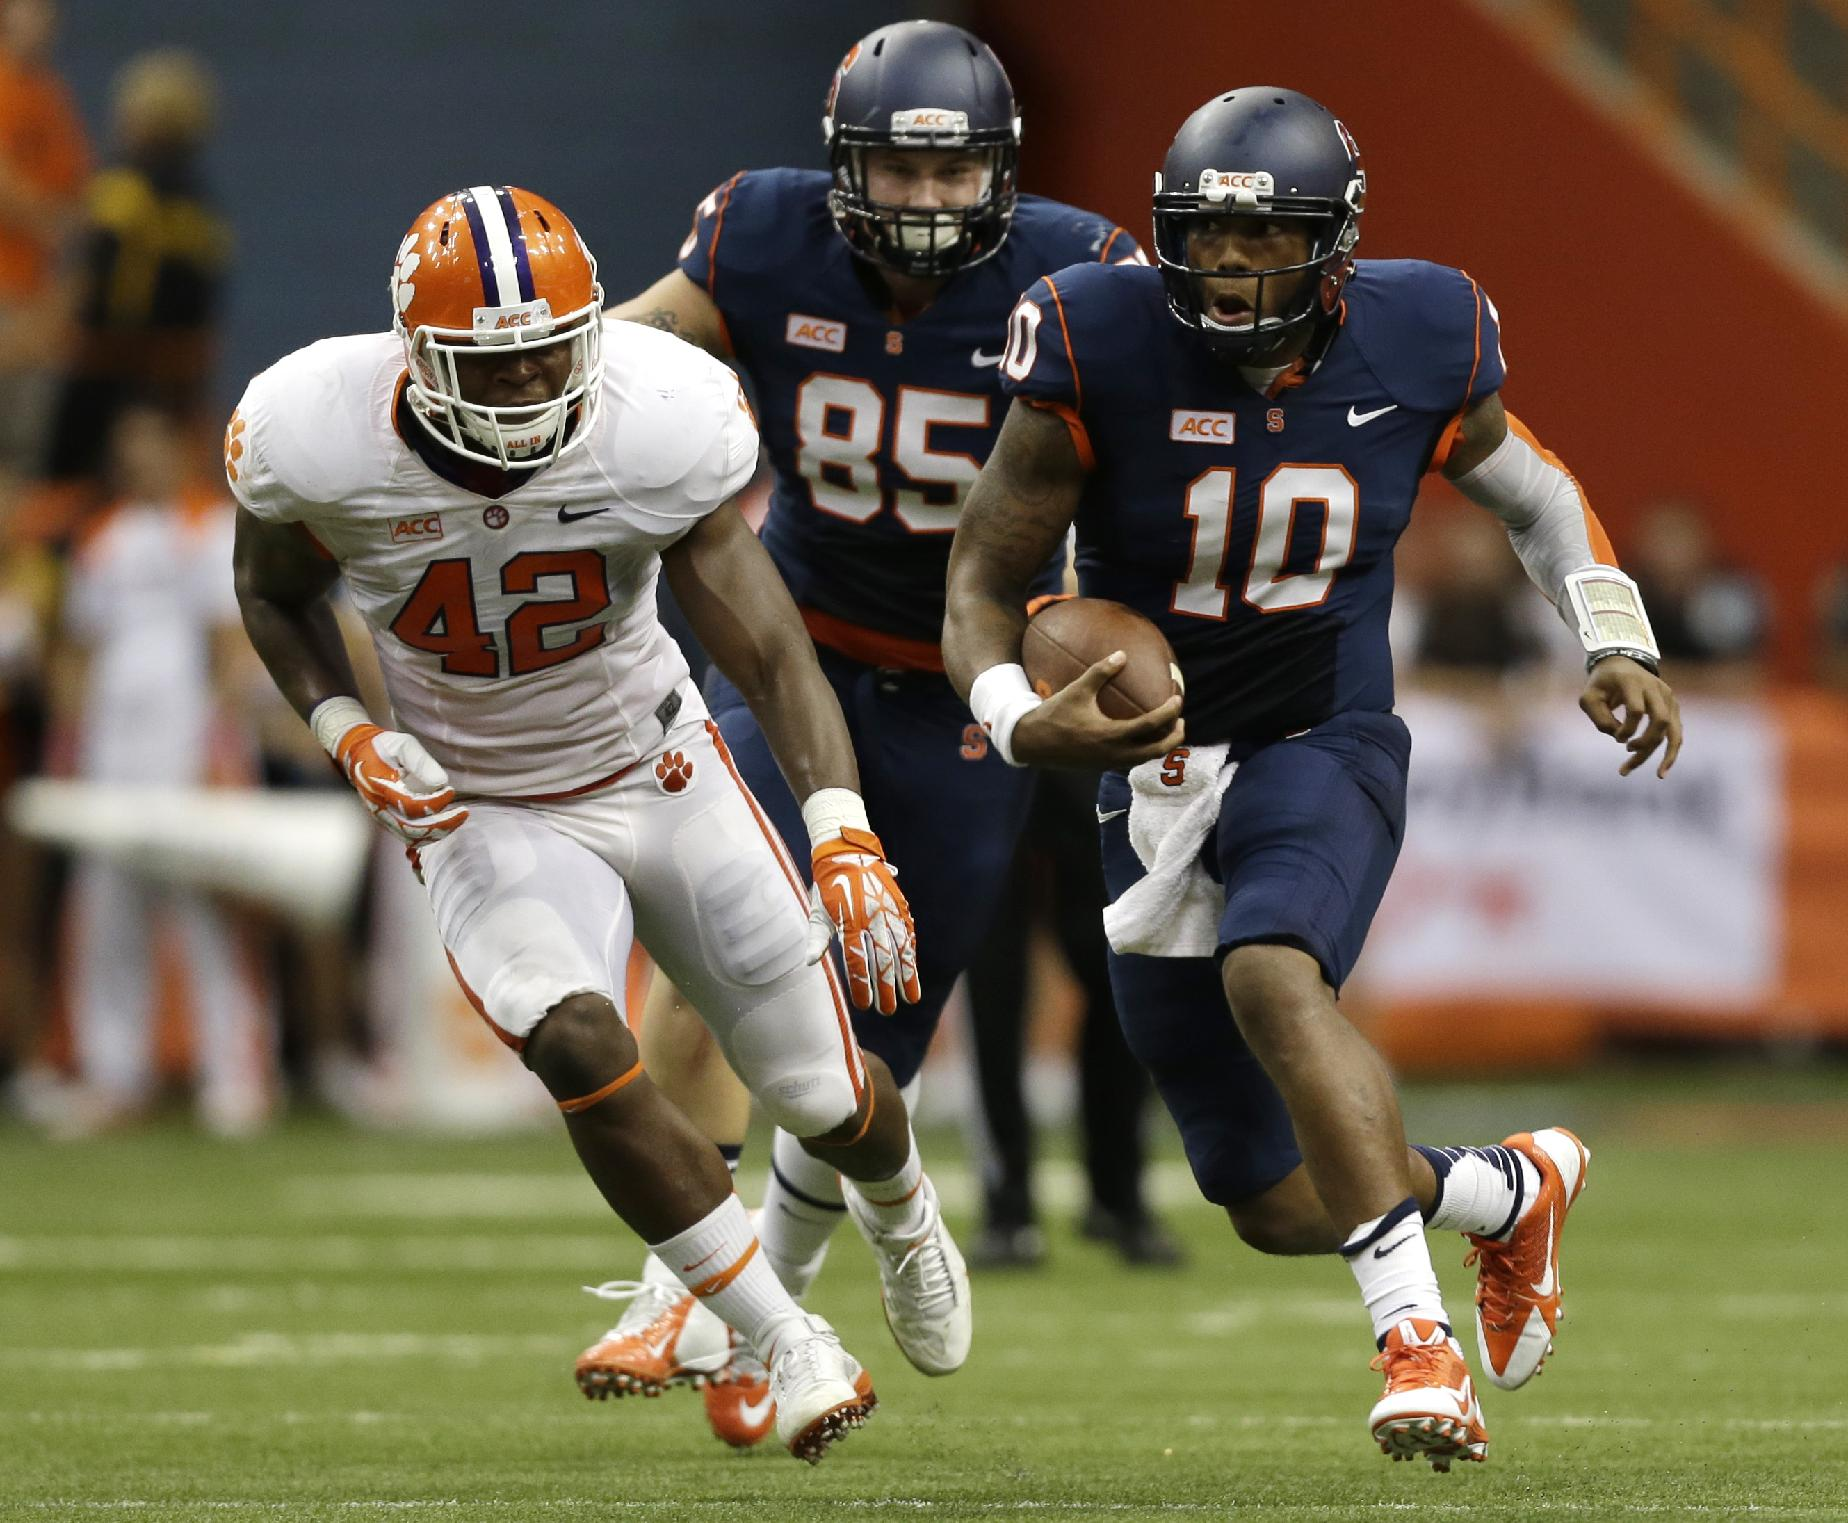 Syracuse quarterback Terrell Hunt (10) runs from Clemson linebacker Stephone Anthony (42) during the second half of an NCAA college football game on Saturday, Oct. 5, 2013, in Syracuse, N.Y. Clemson won, 49-14